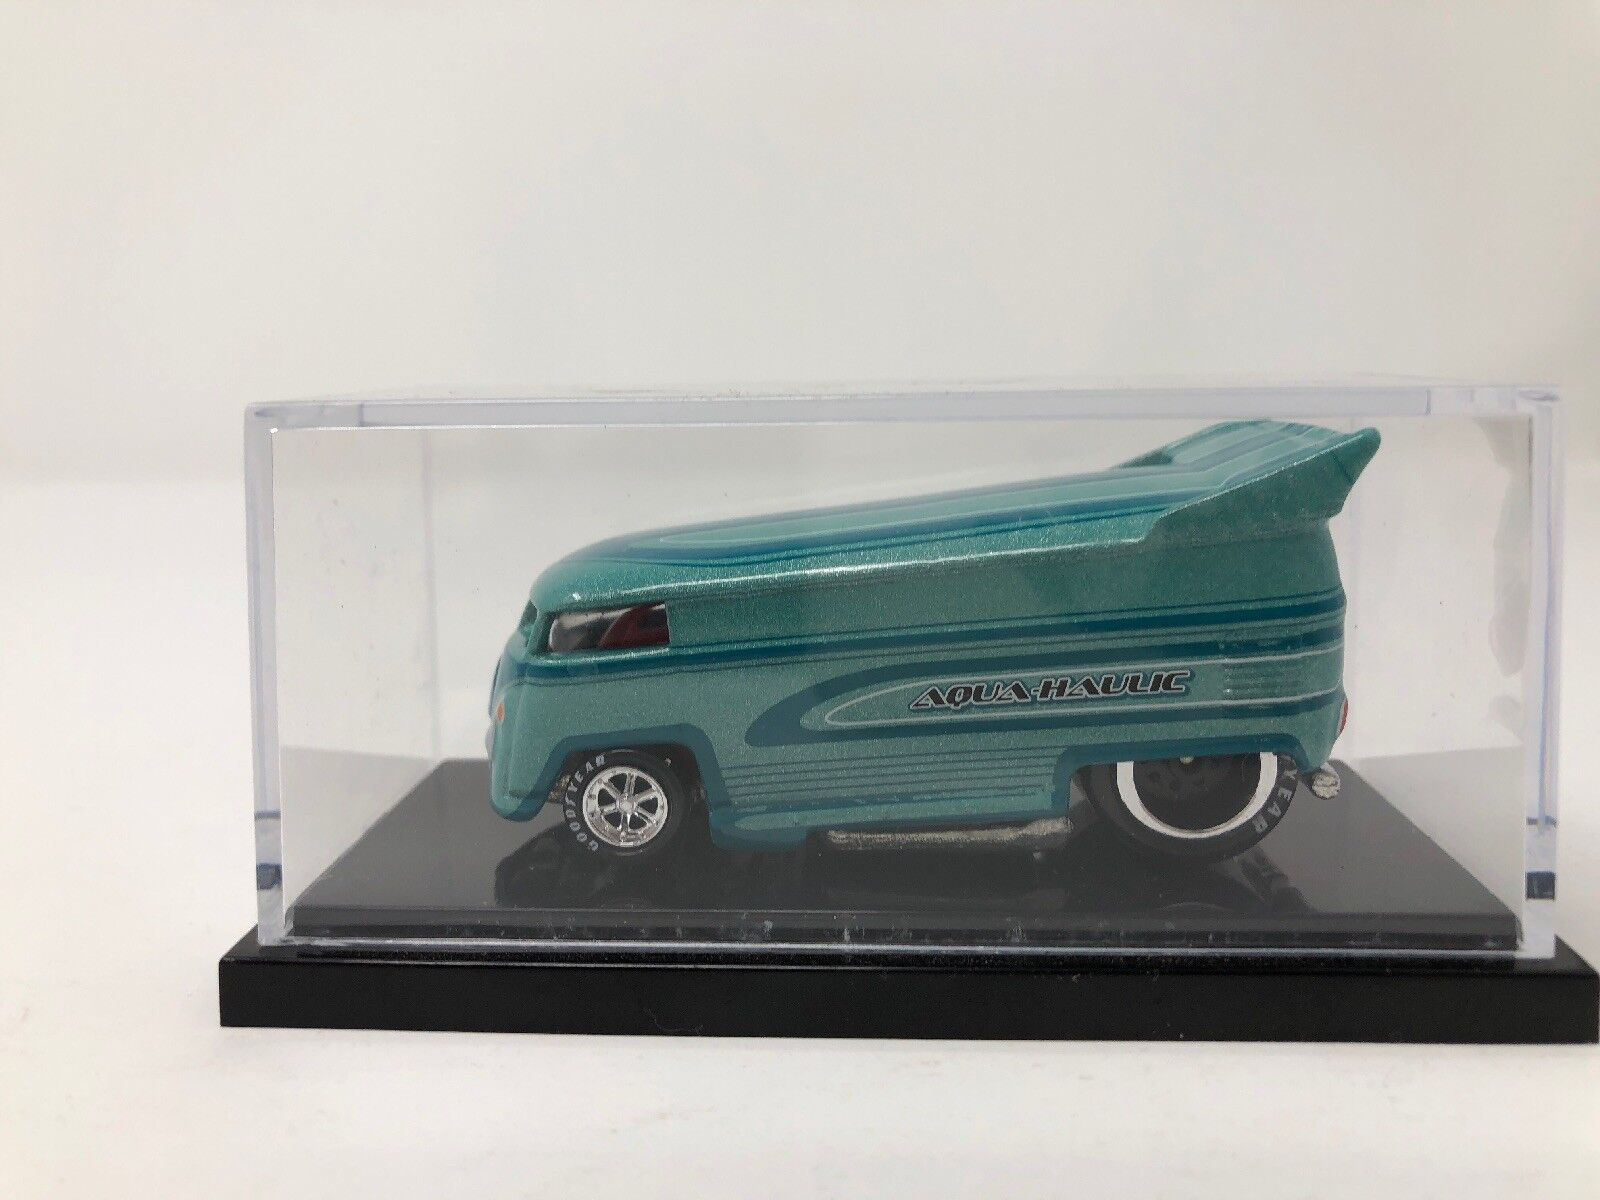 Hot Wheels Liberty Promotions Aqua Haulie VW Drag Bus 491 1300